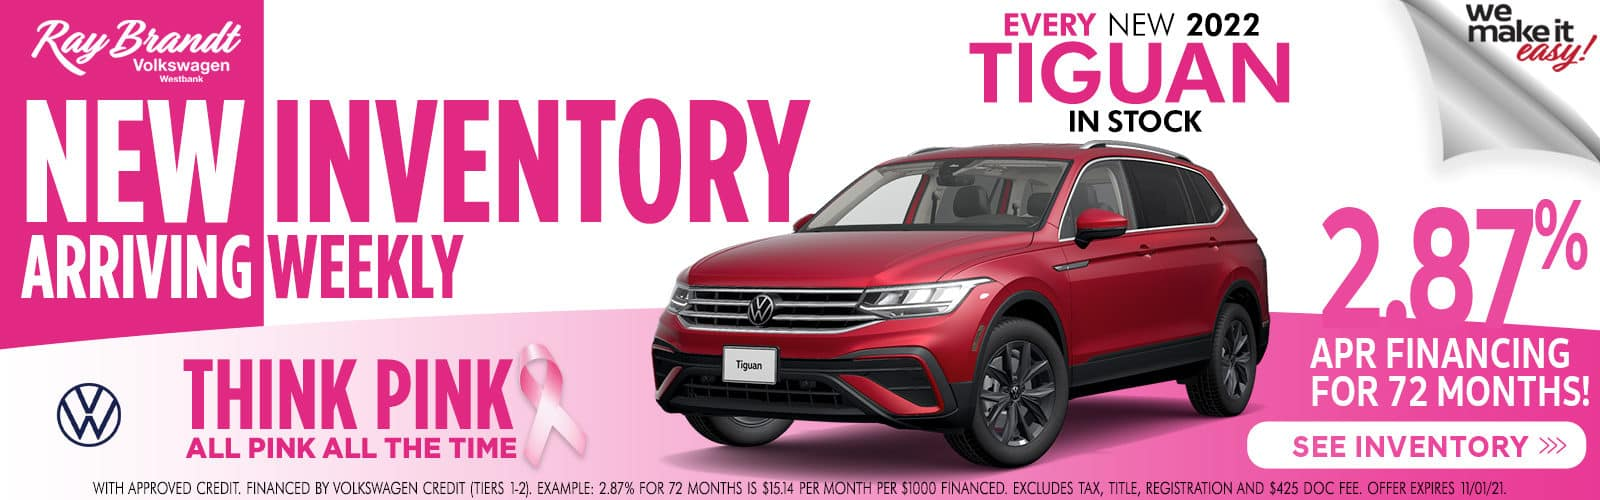 EVERY NEW 2022 TIGUAN IN STOCK 2.87% APR FINANCING FOR 72 MONTHS